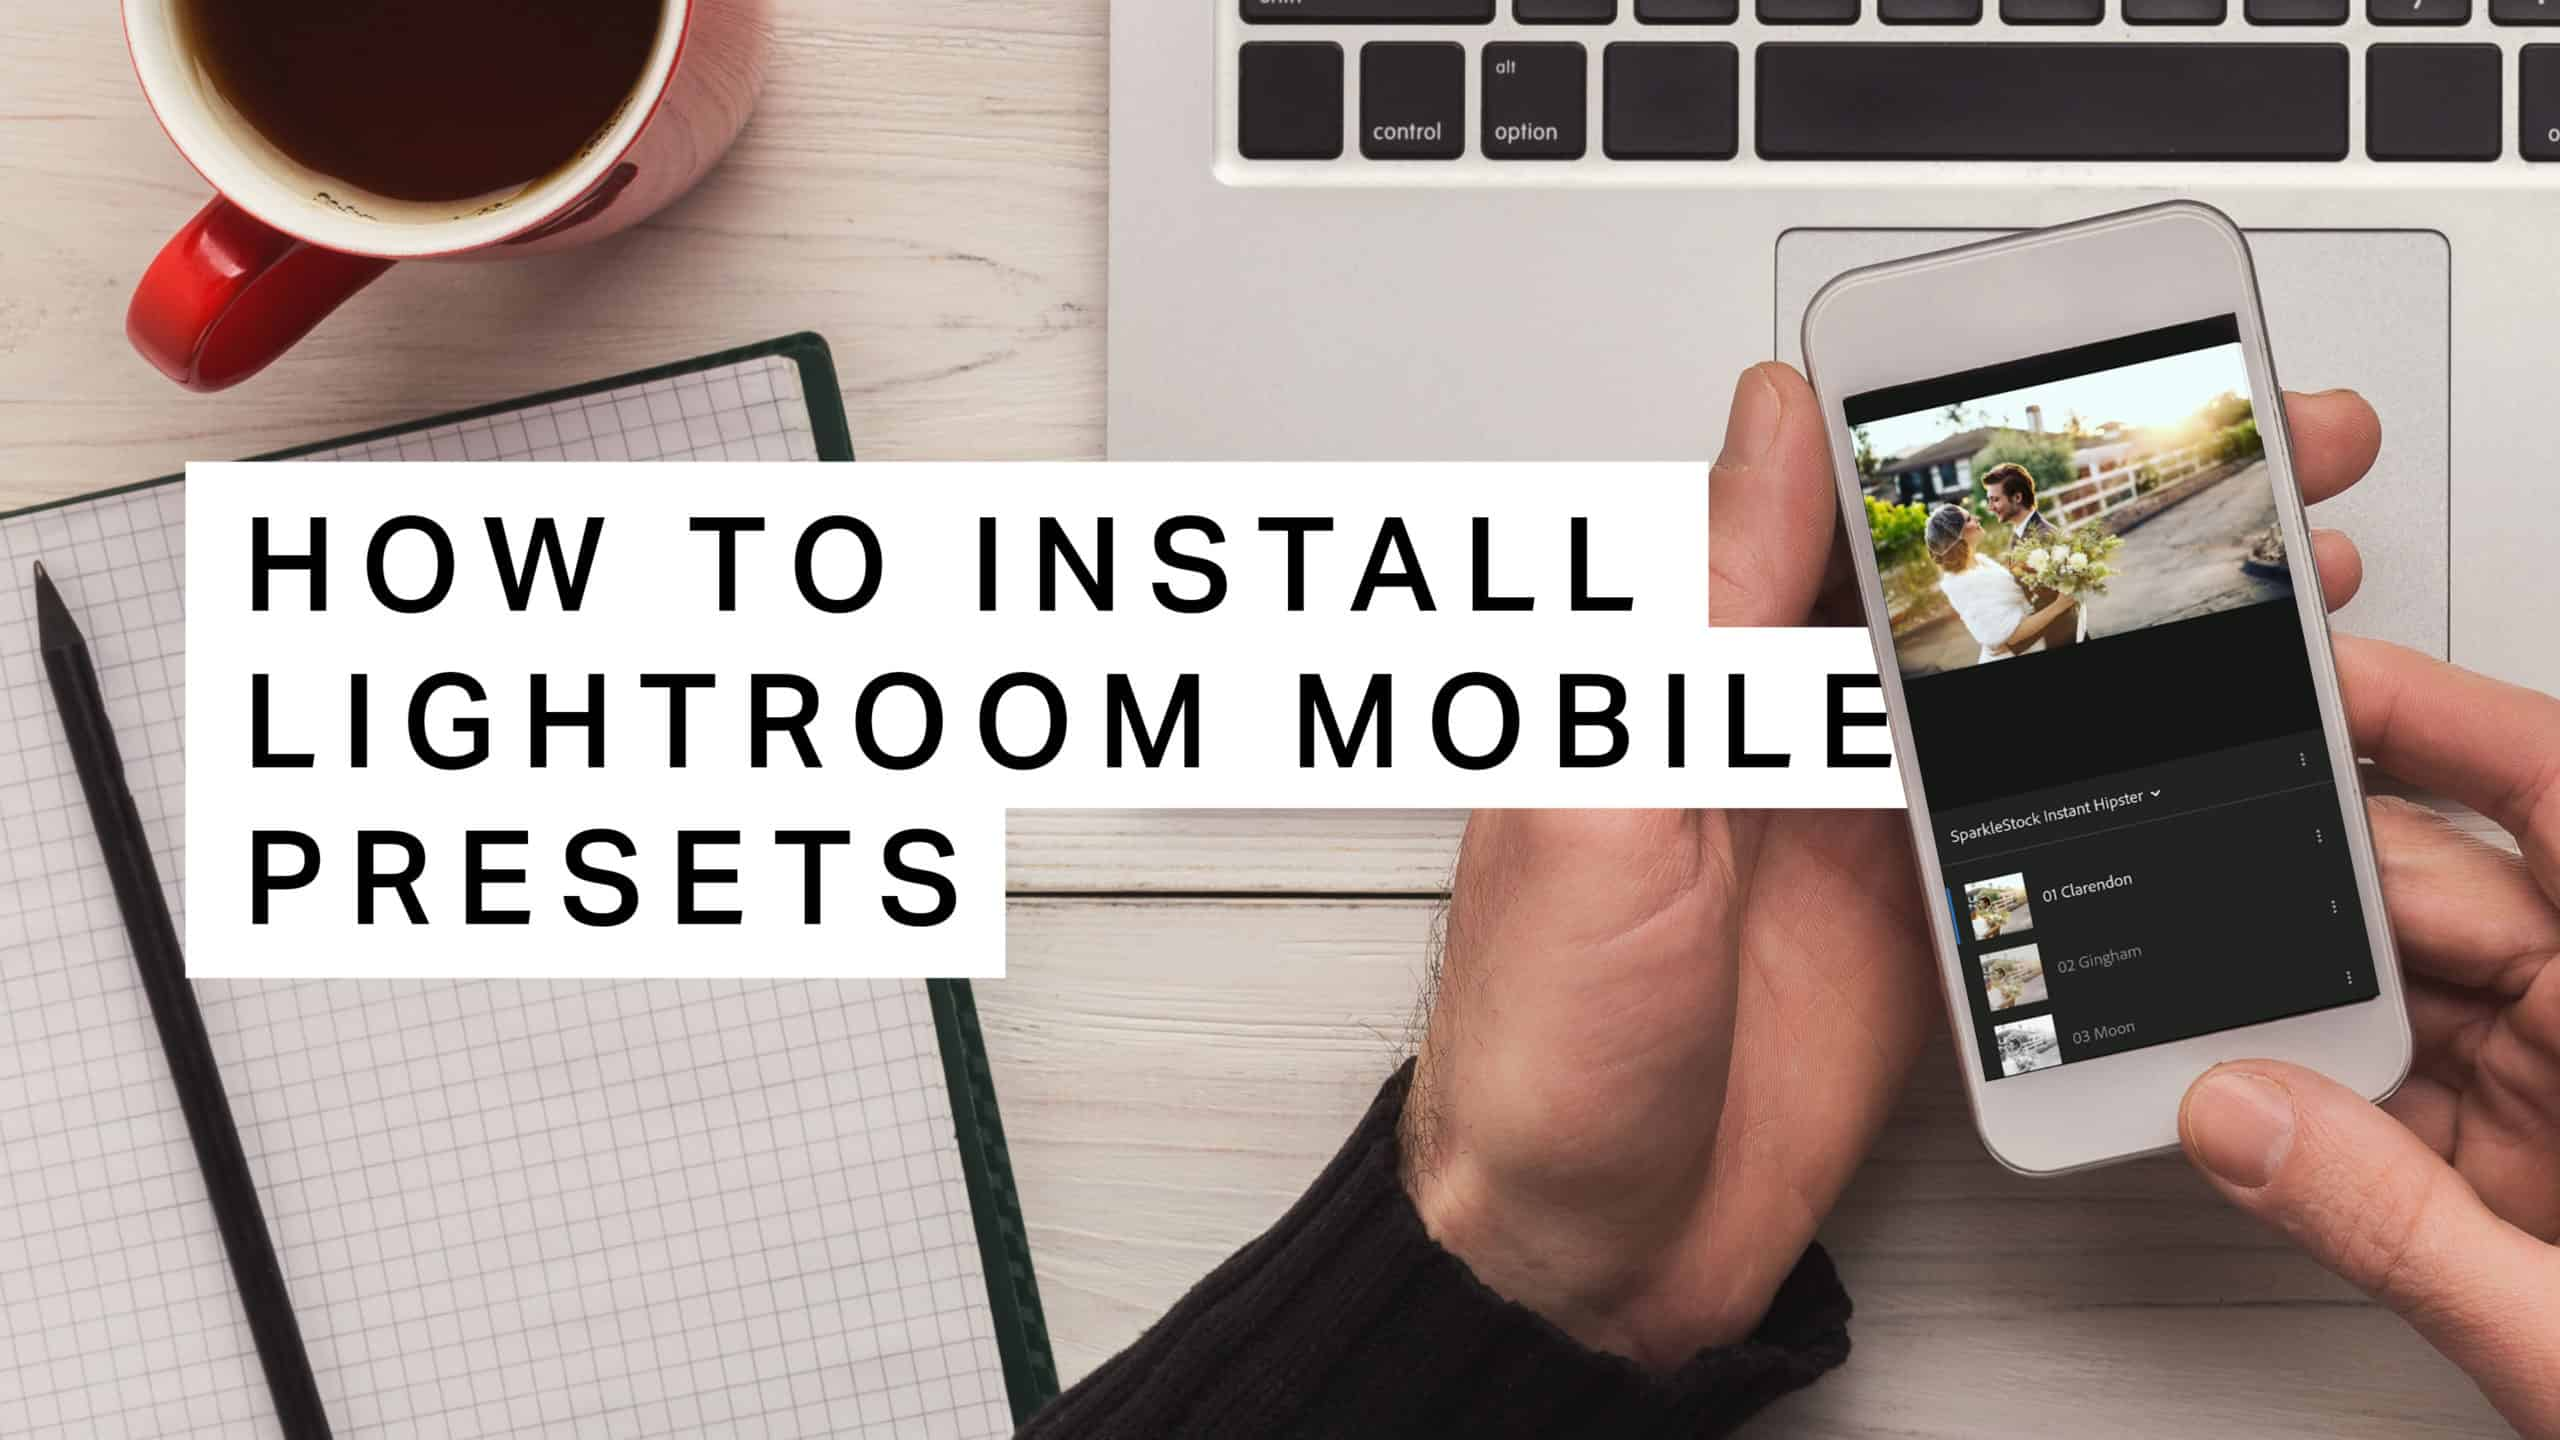 How to Sync Presets to Lightroom Mobile CC